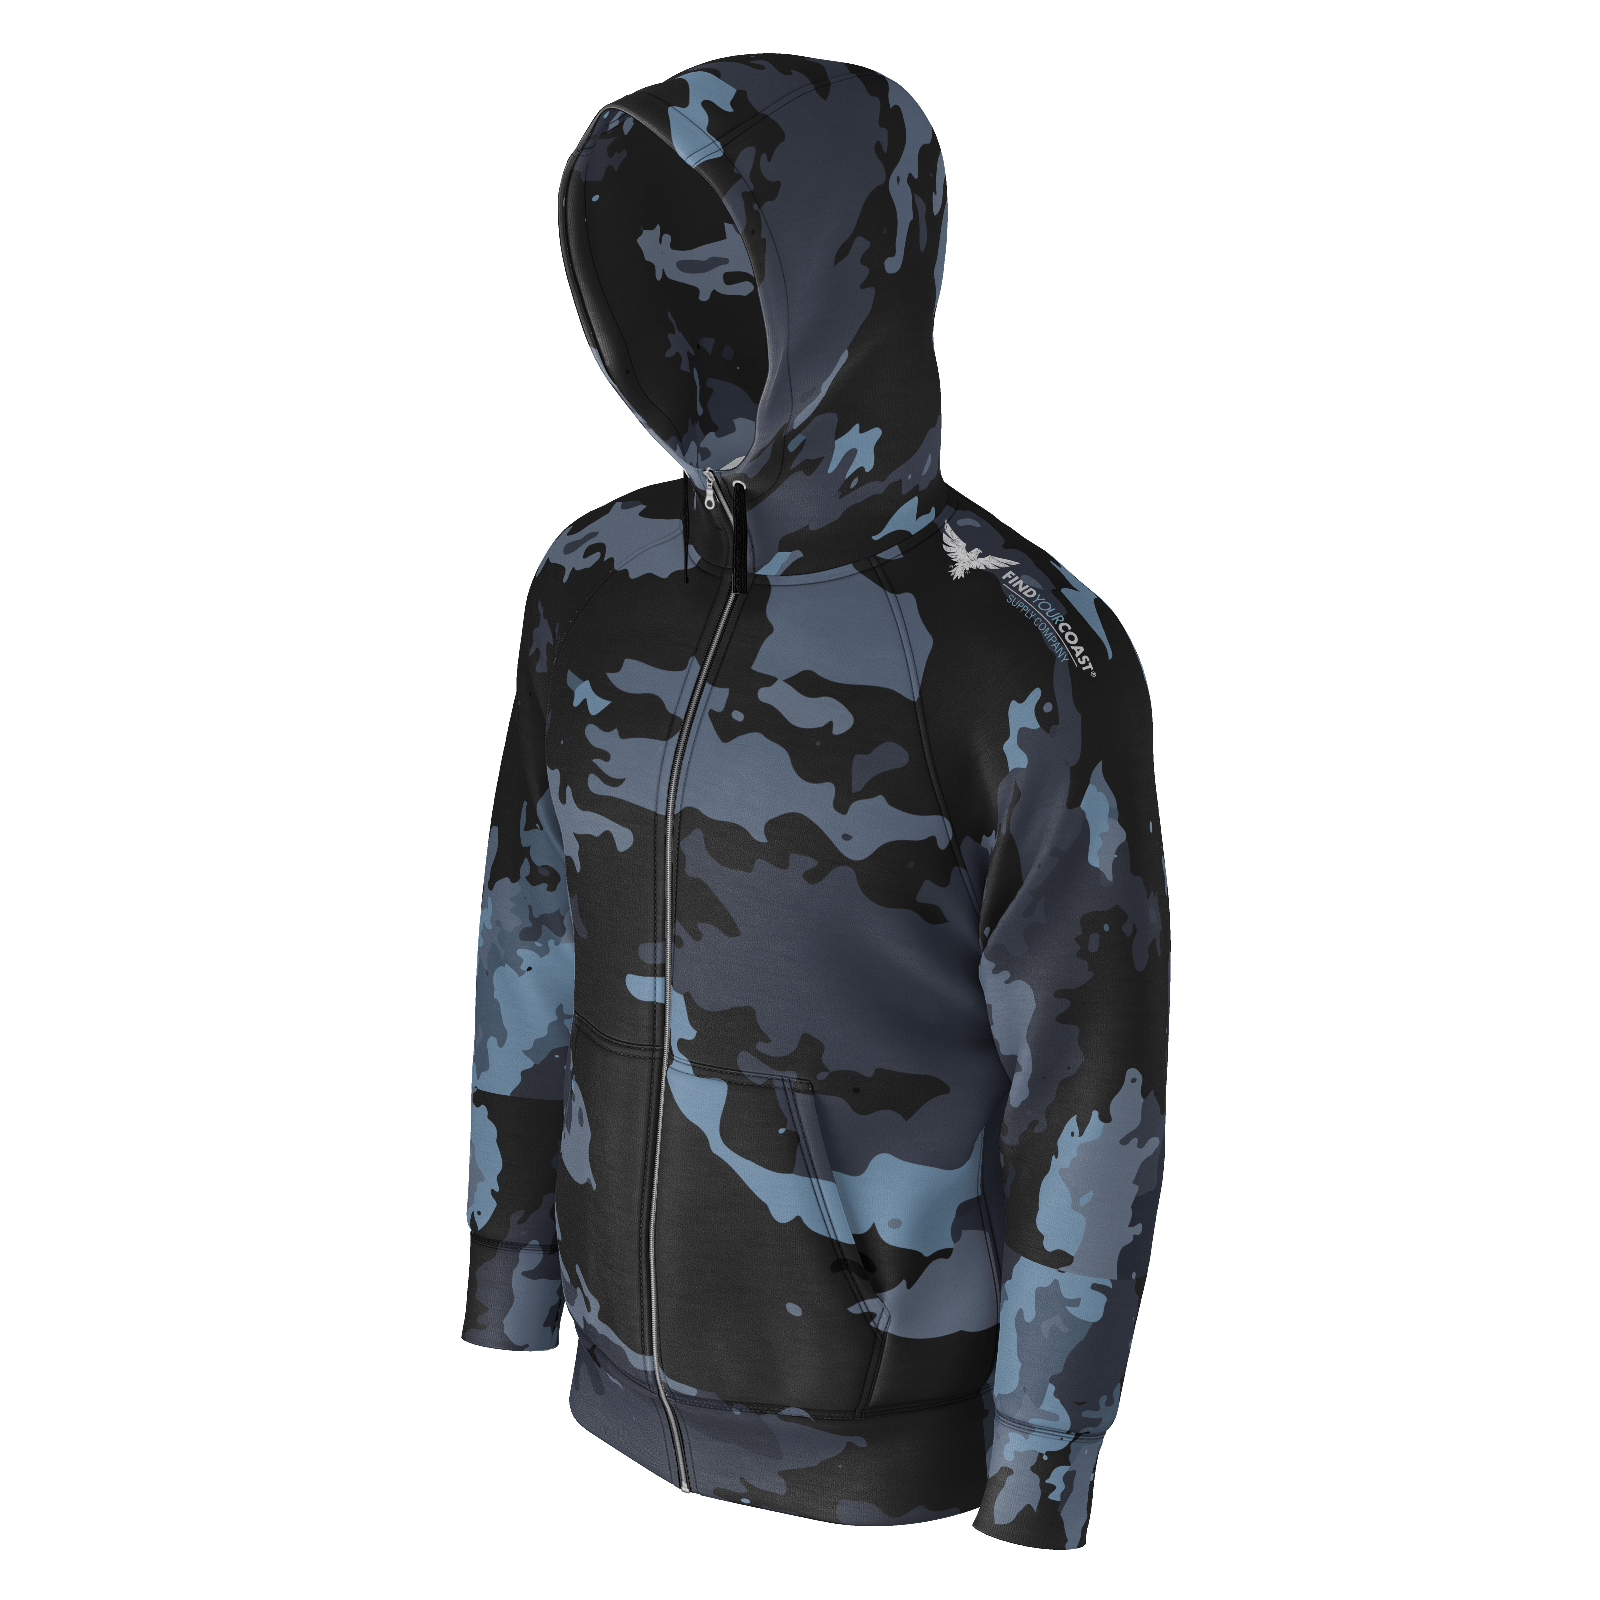 Men's Find Your Coast Camo Sustainable Zip-Up Hoodie Sweatshirt - Find Your Coast Supply Co.